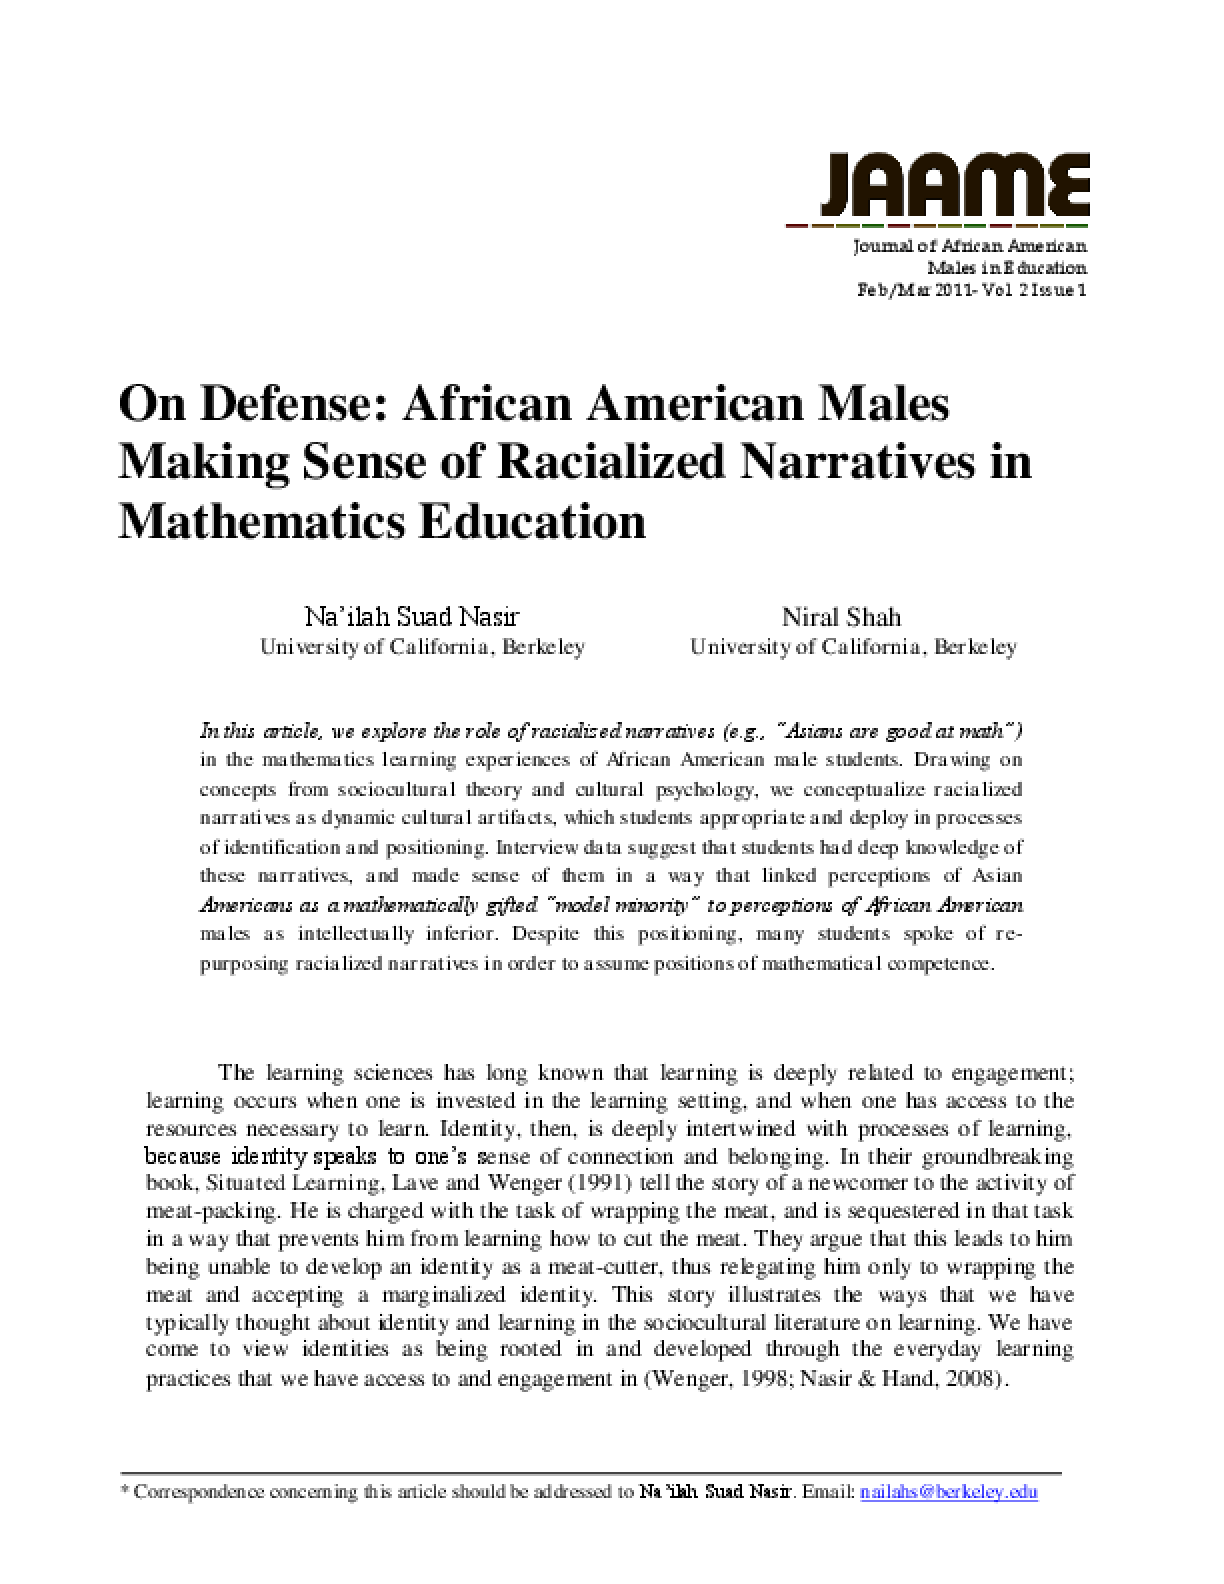 Making Sense Of African American >> On Defense African American Males Making Sense Of